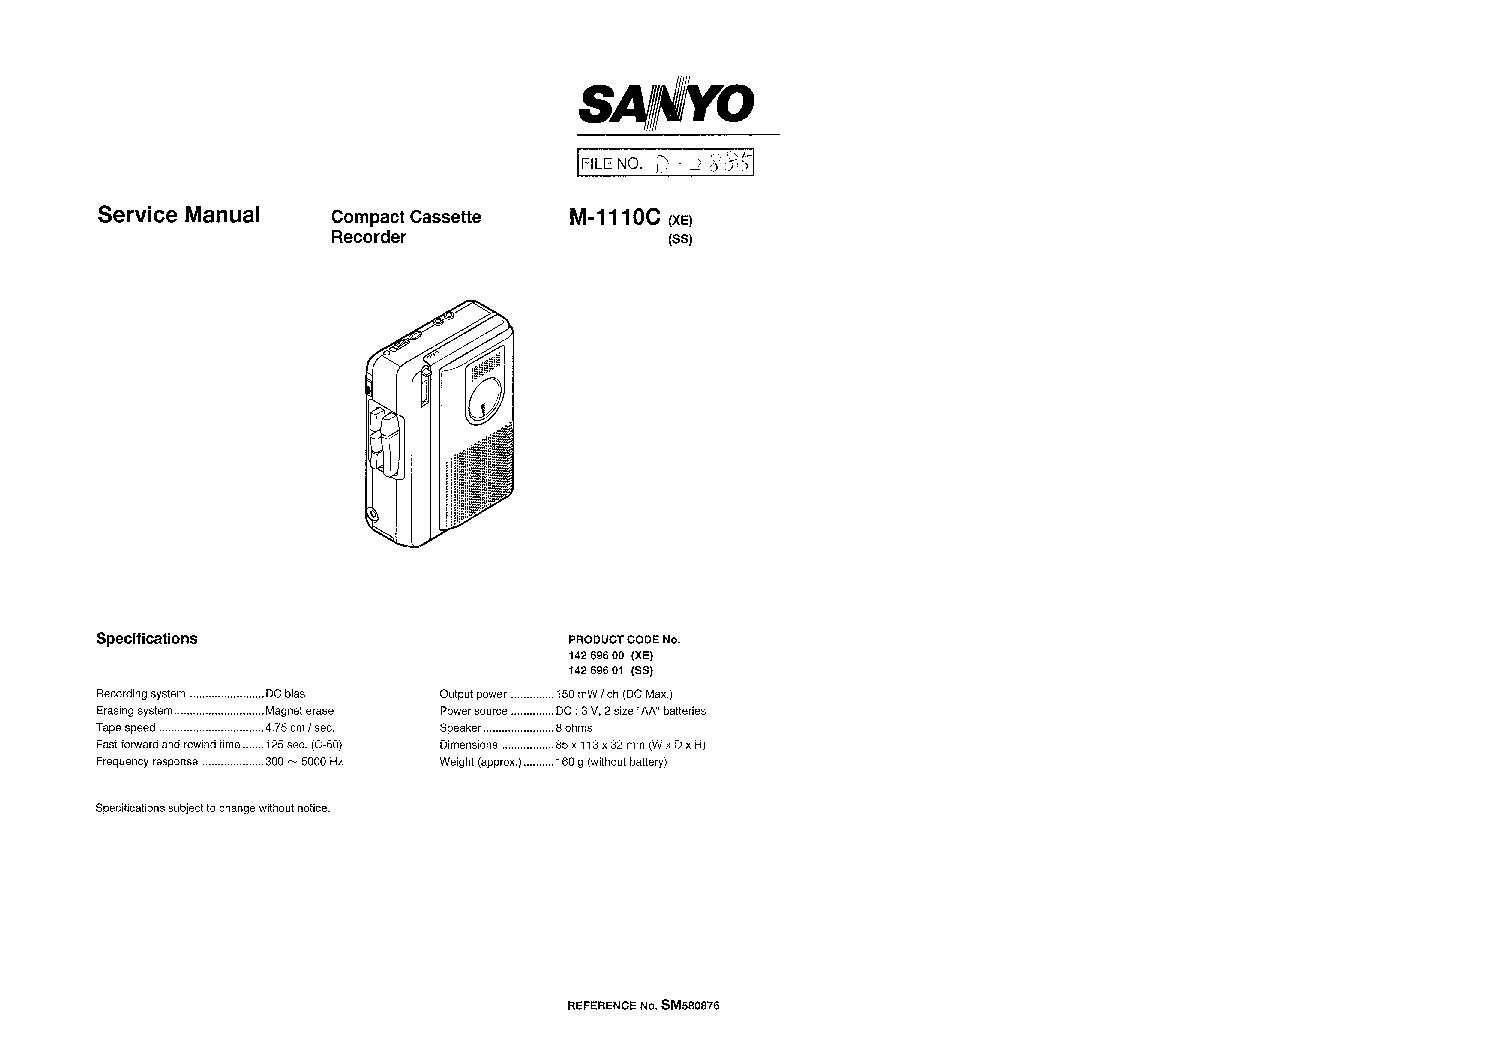 SANYO 6SC 10 SCH Service Manual download, schematics